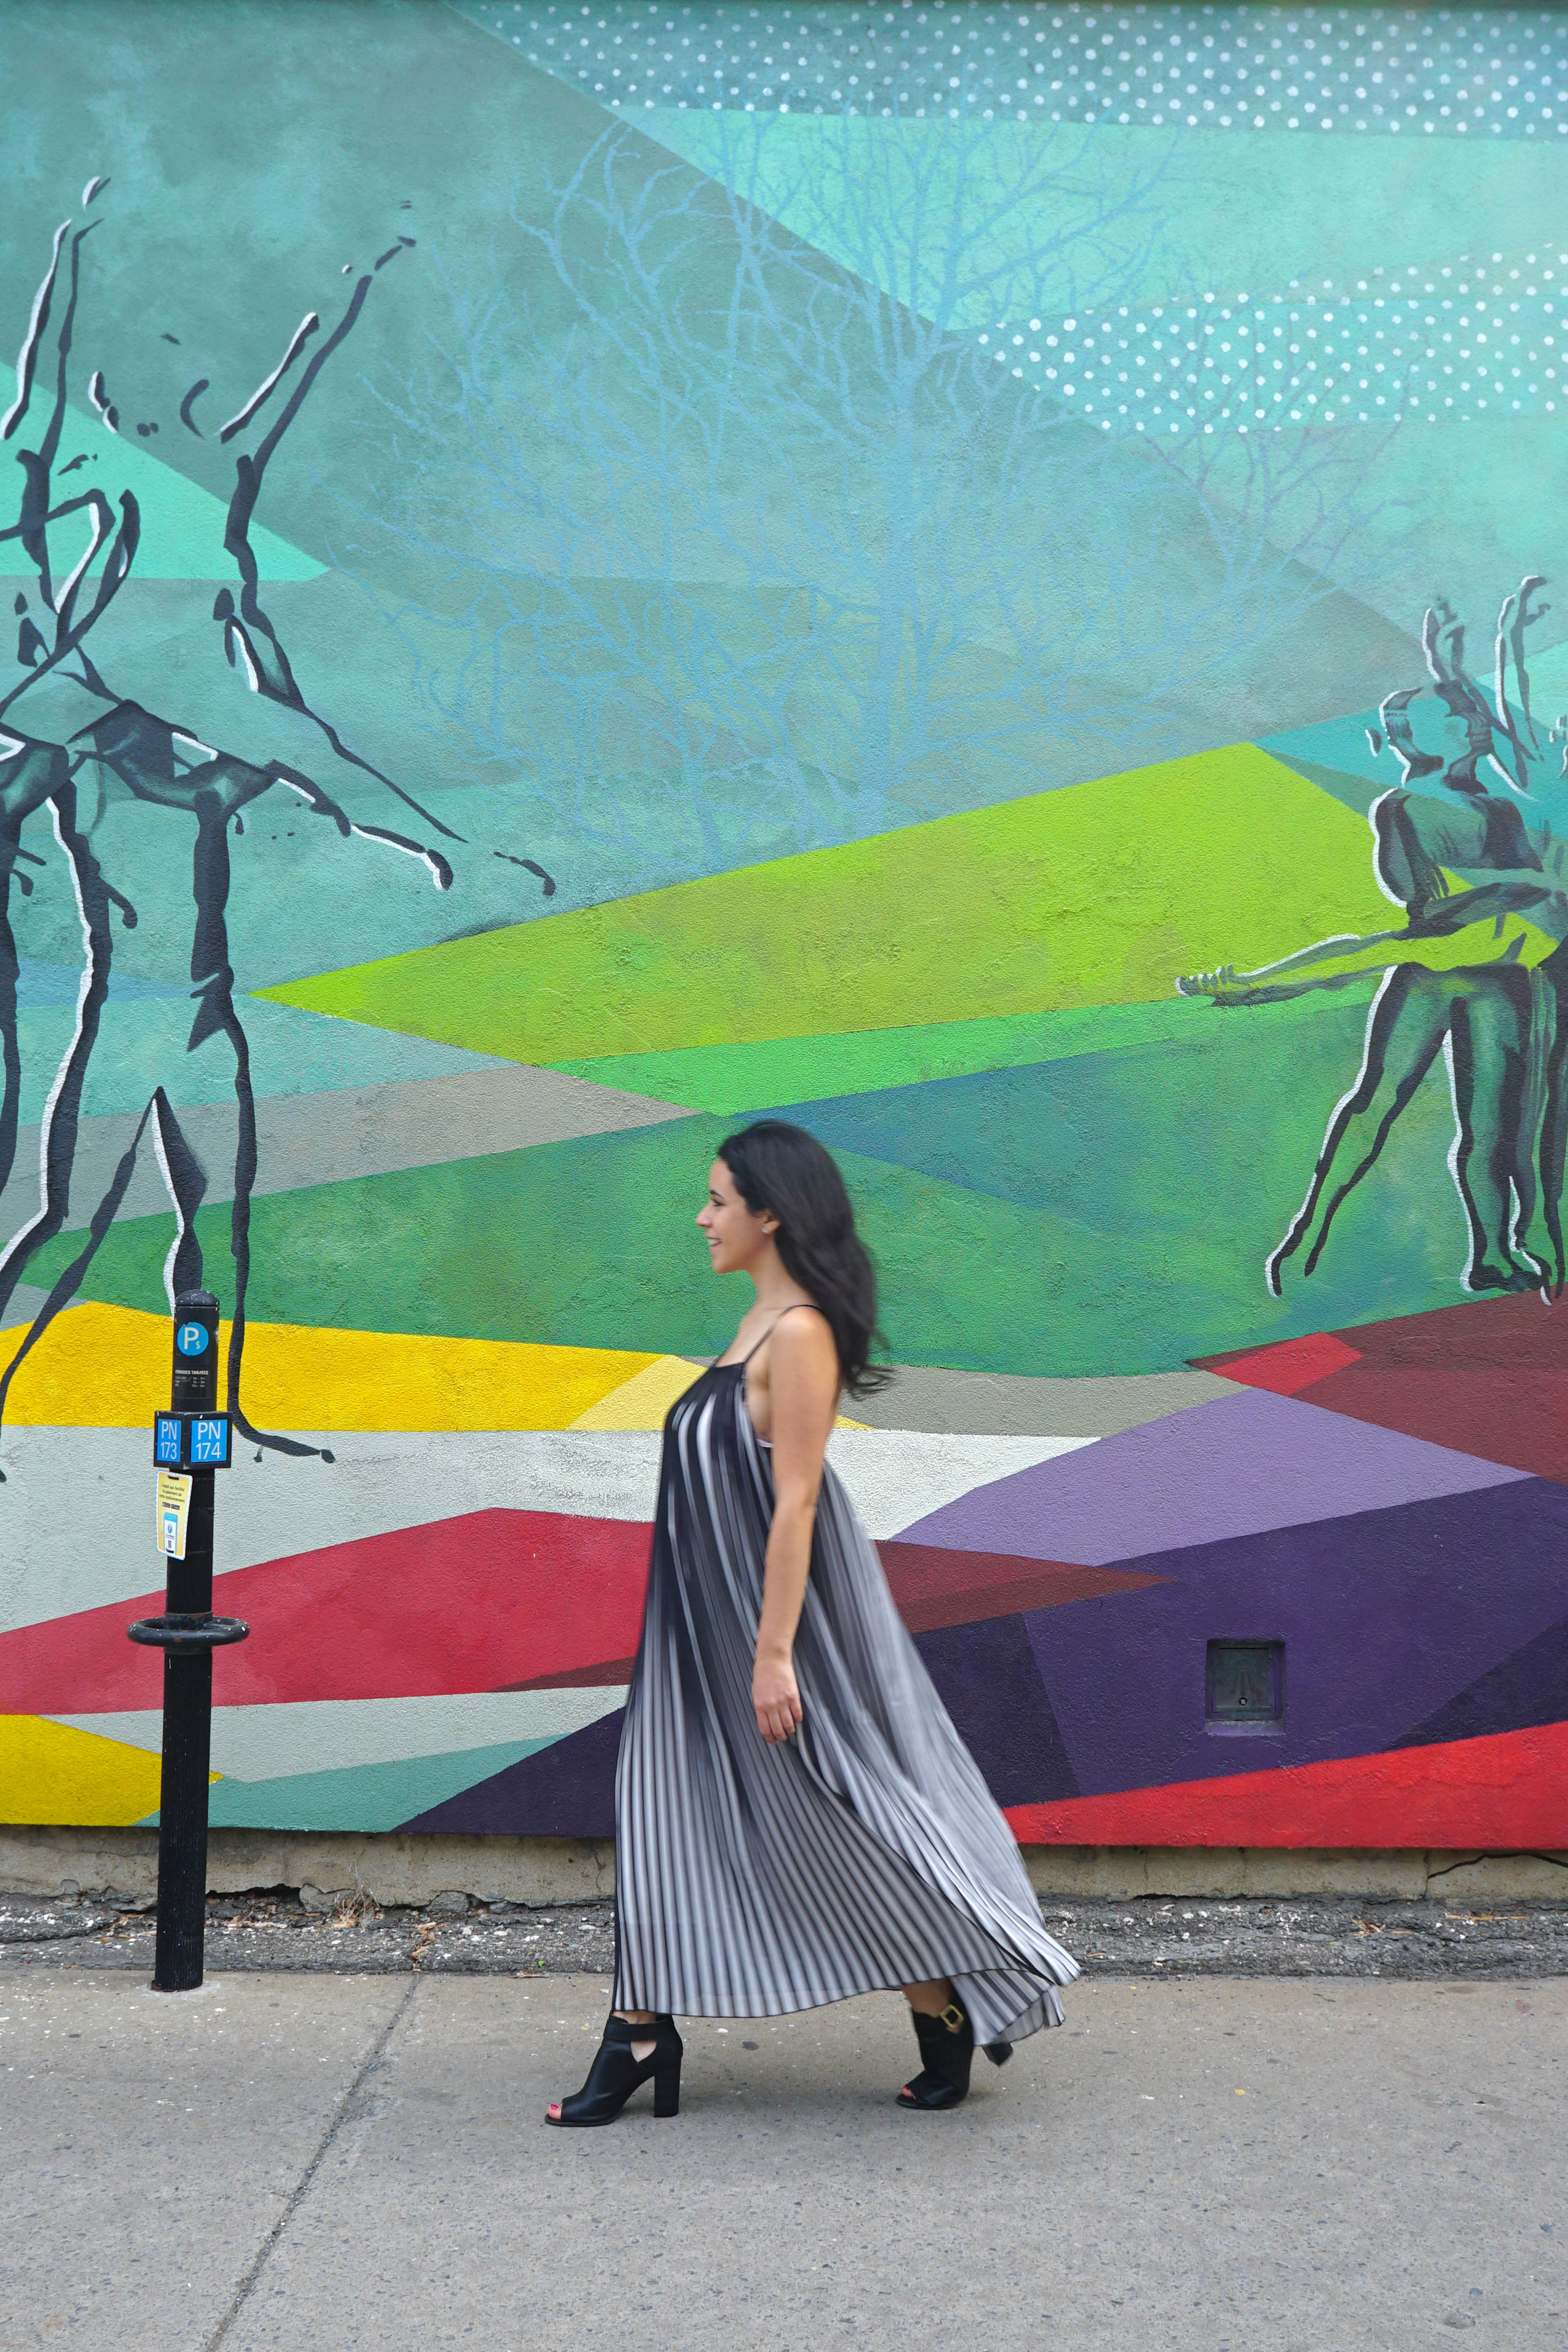 The Travel Women Guide to Street Photography Stride By